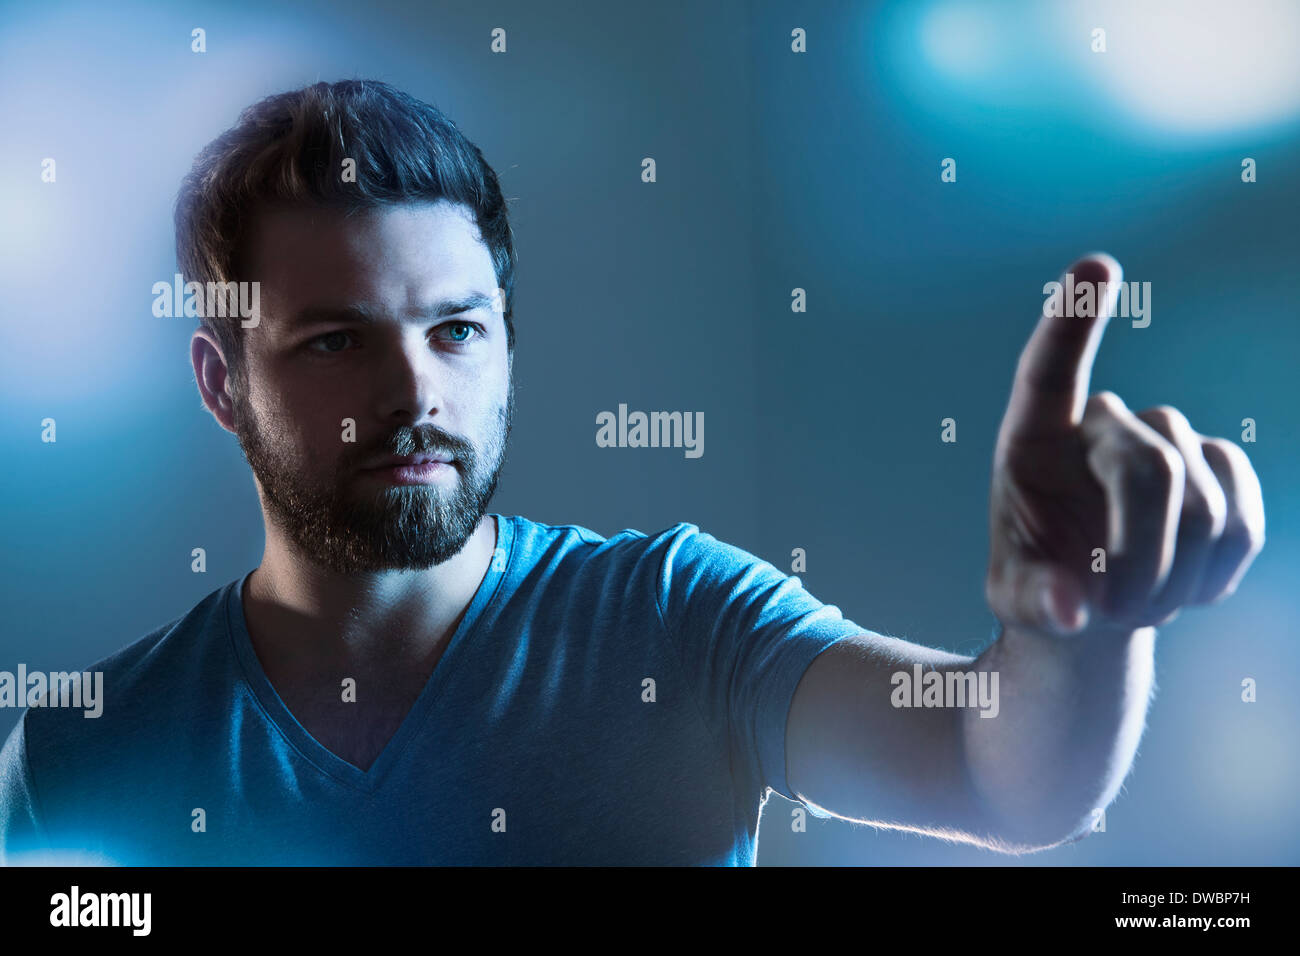 Man pointing on imaginary touchscreen - Stock Image